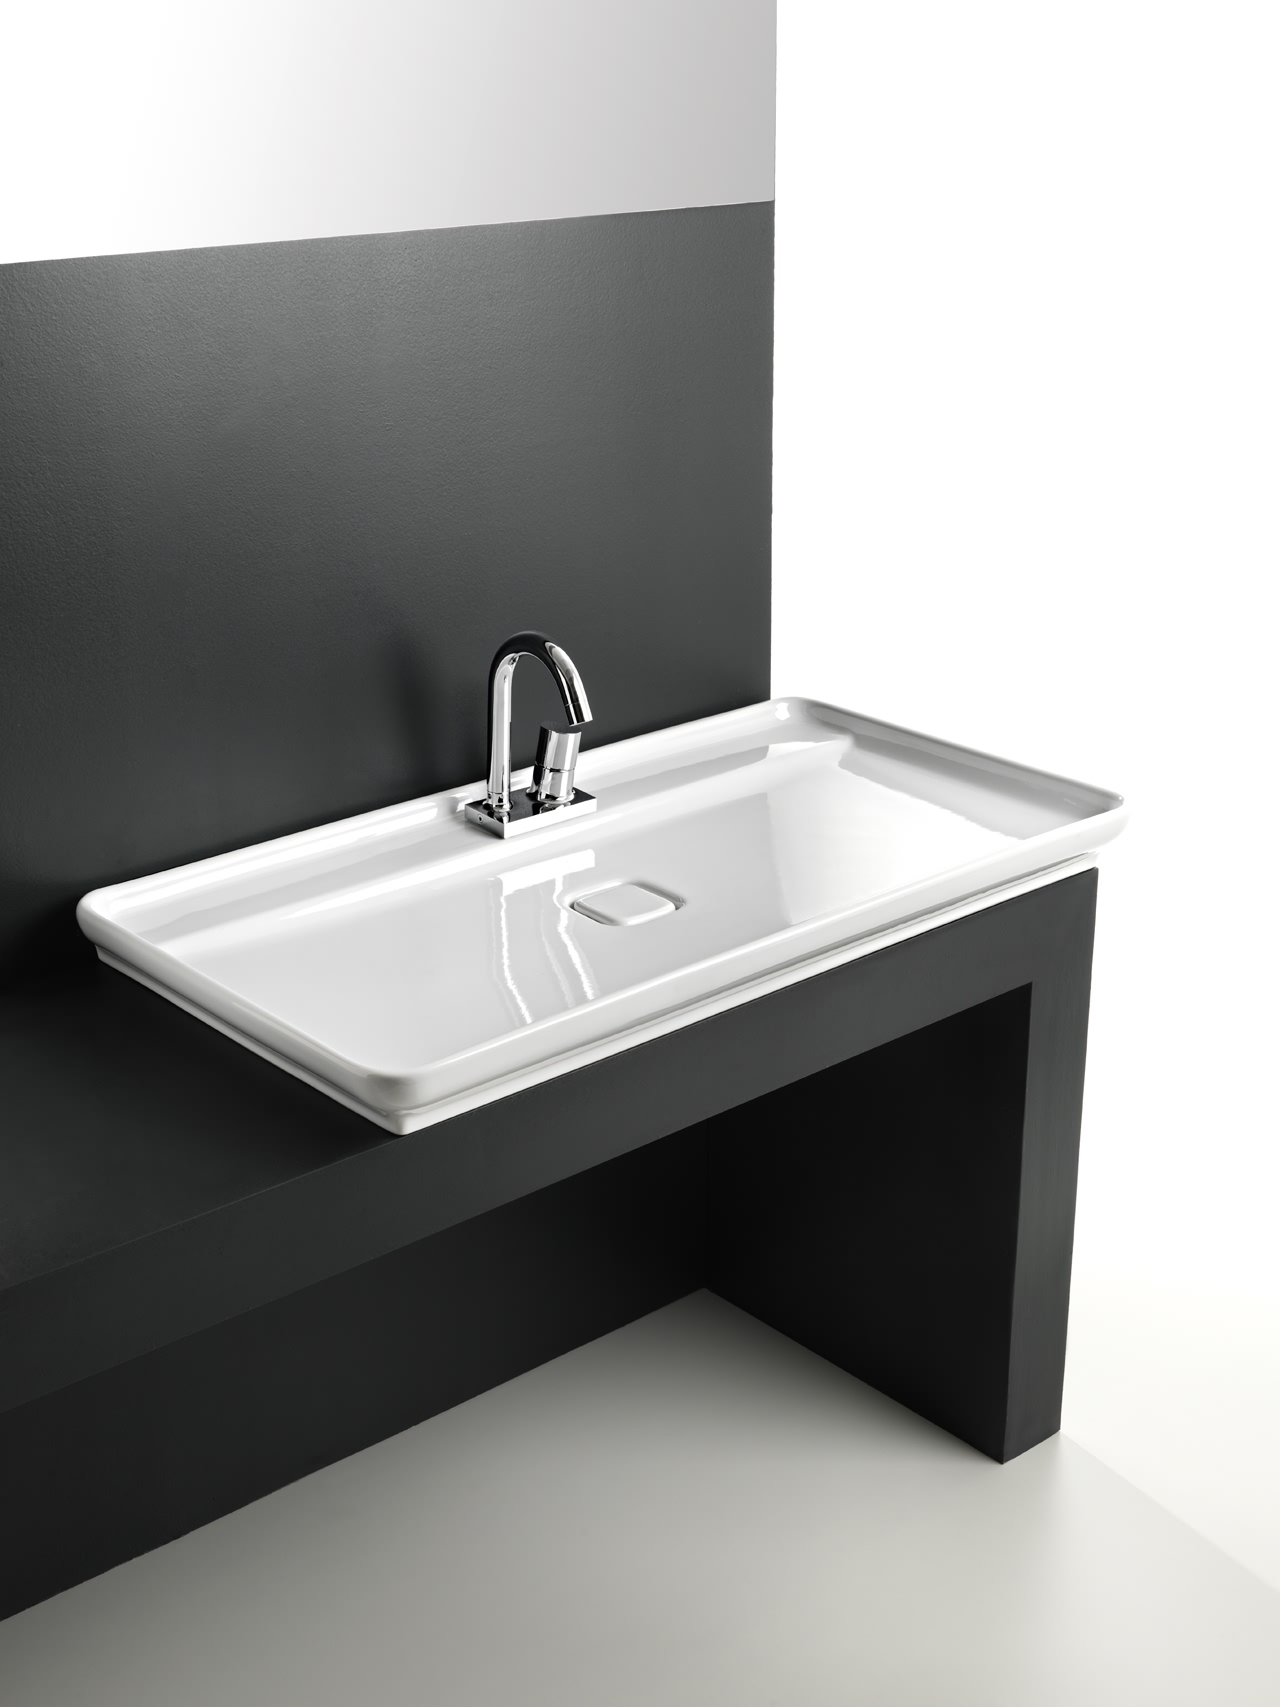 35 unique bathroom sink designs for your beautiful bathroom for Evier de salle de bain en pierre